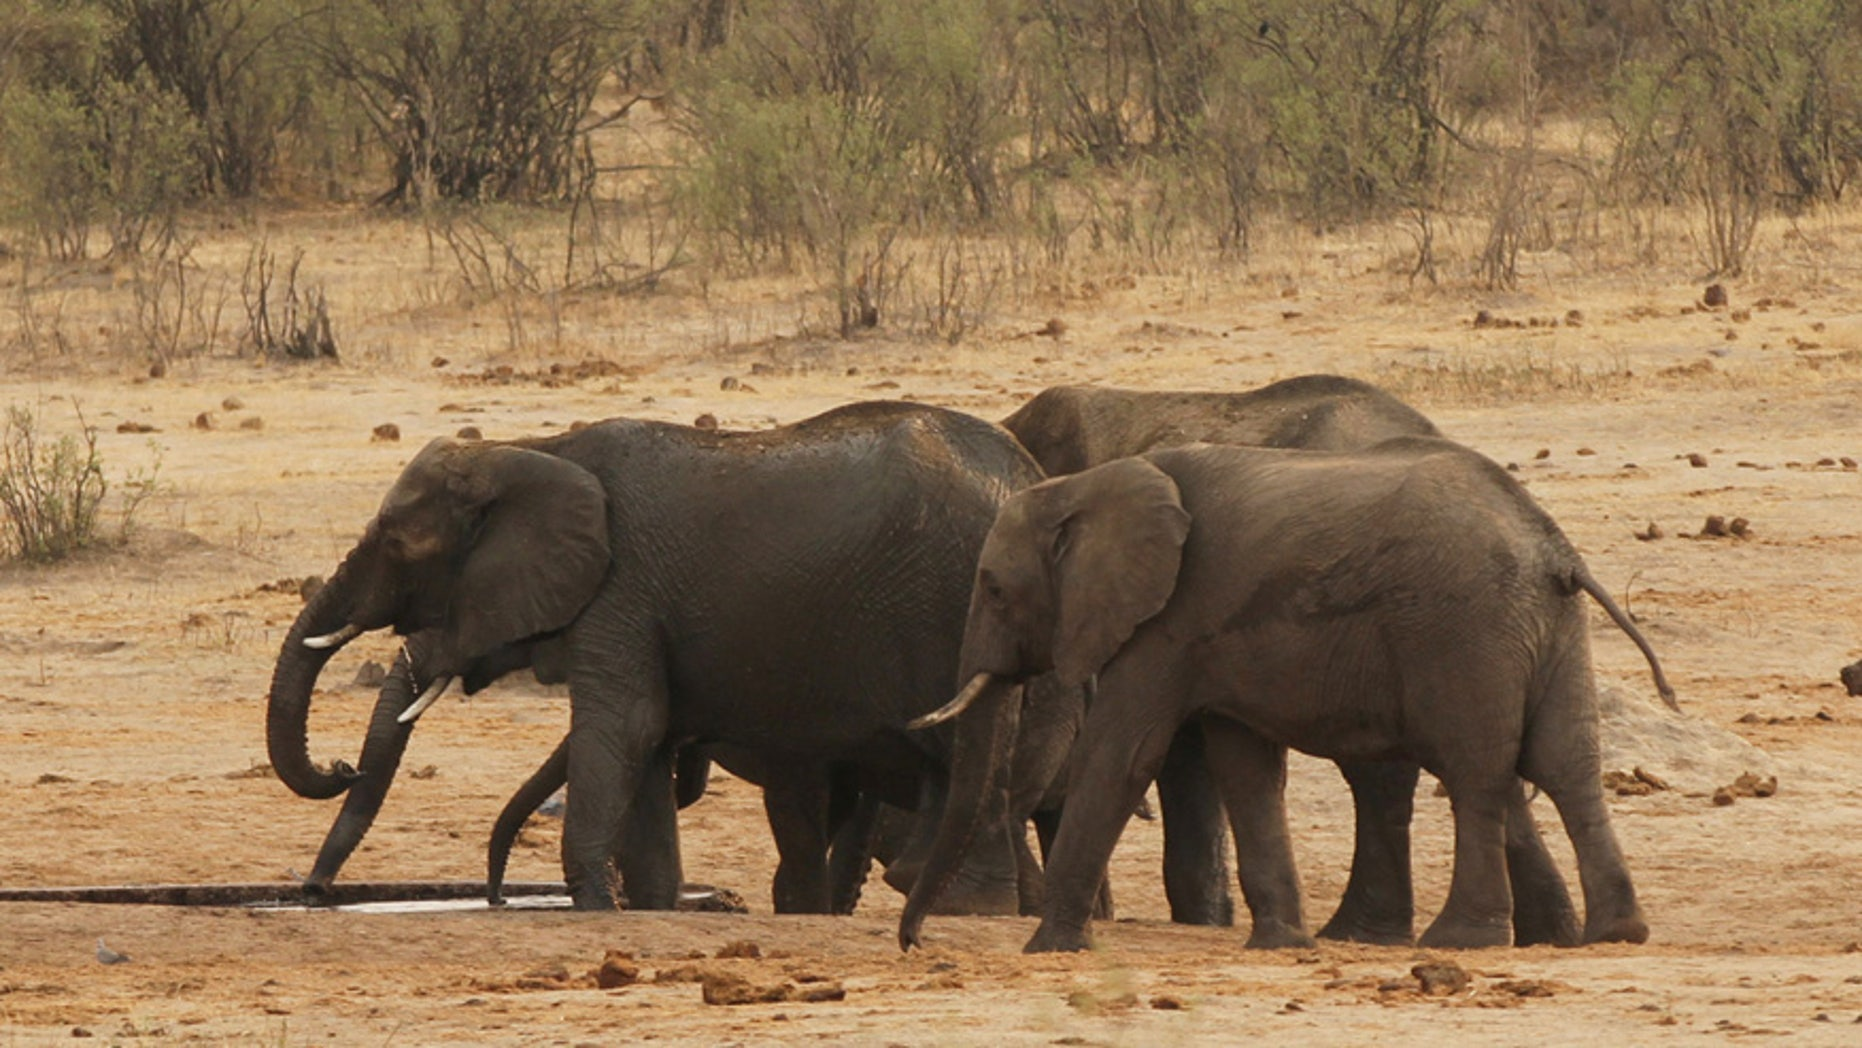 Sept. 29, 2015: A herd of elephants walk at a watering hole in Hwange National Park in Zimbabwe.